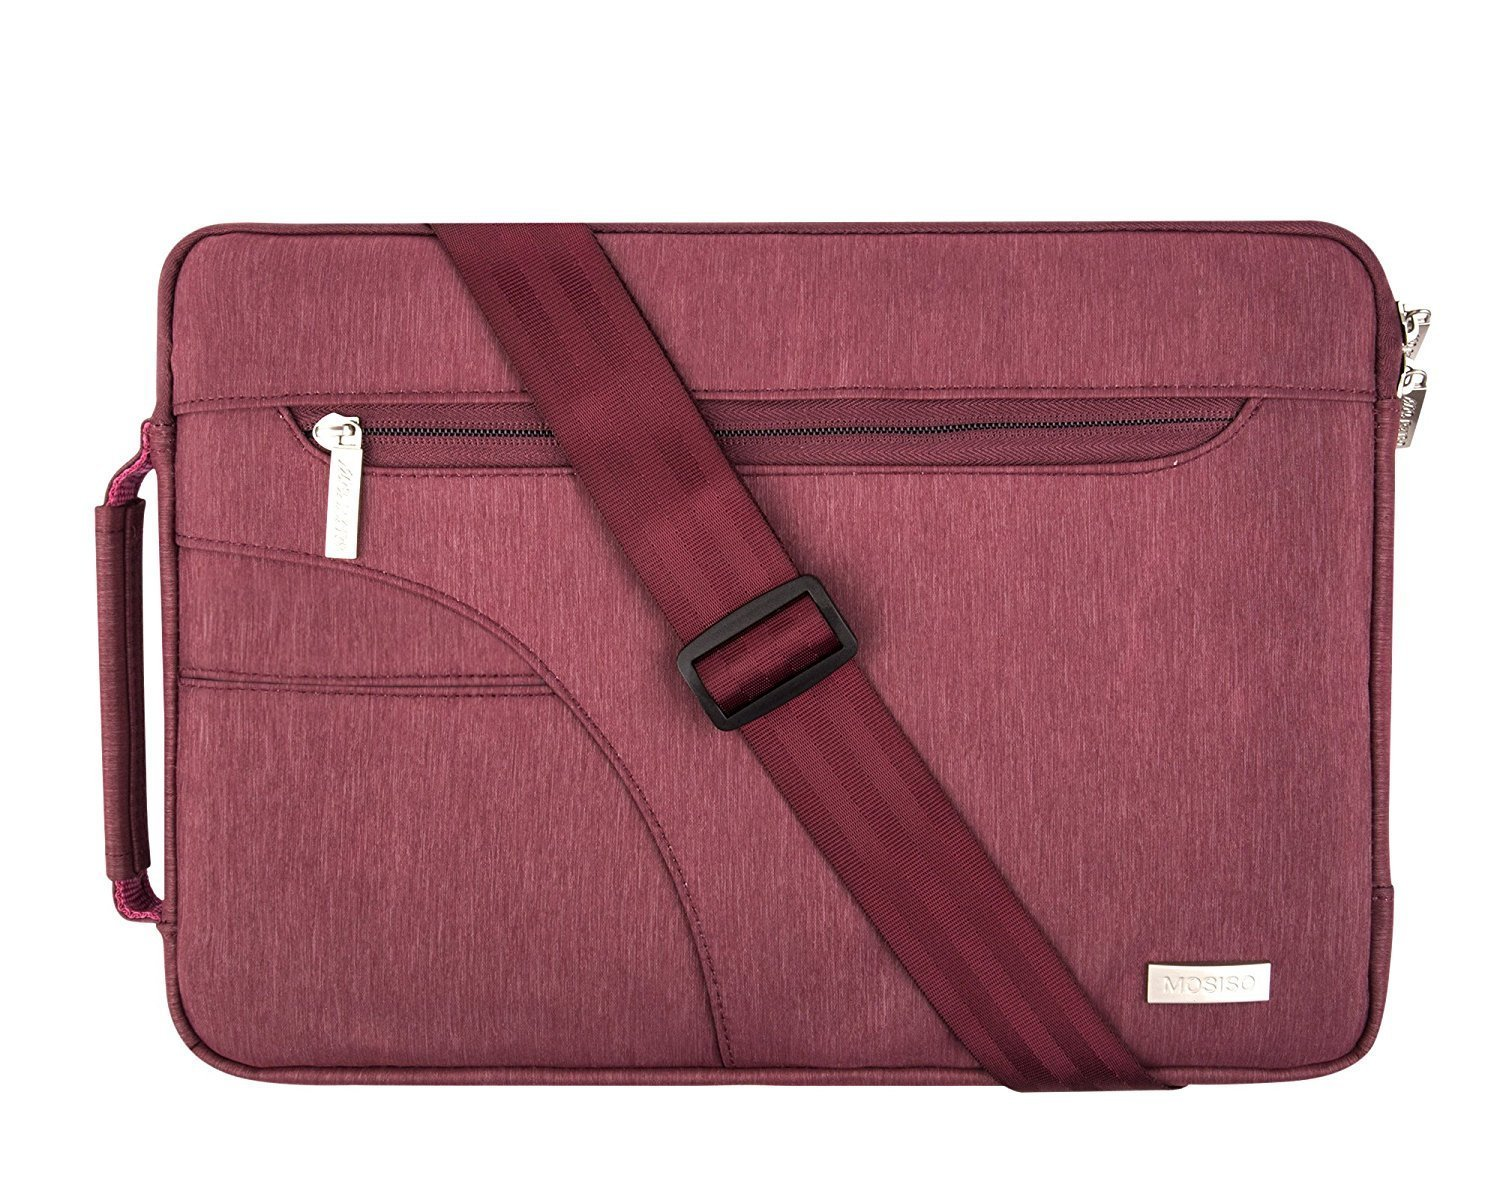 MOSISO Laptop Shoulder Bag Compatible 13-13.3 Inch MacBook Pro, MacBook Air, Ultrabook Netbook Tablet, Polyester Ultraportable Protective Briefcase Carrying Handbag Sleeve Case Cover, Wine Red